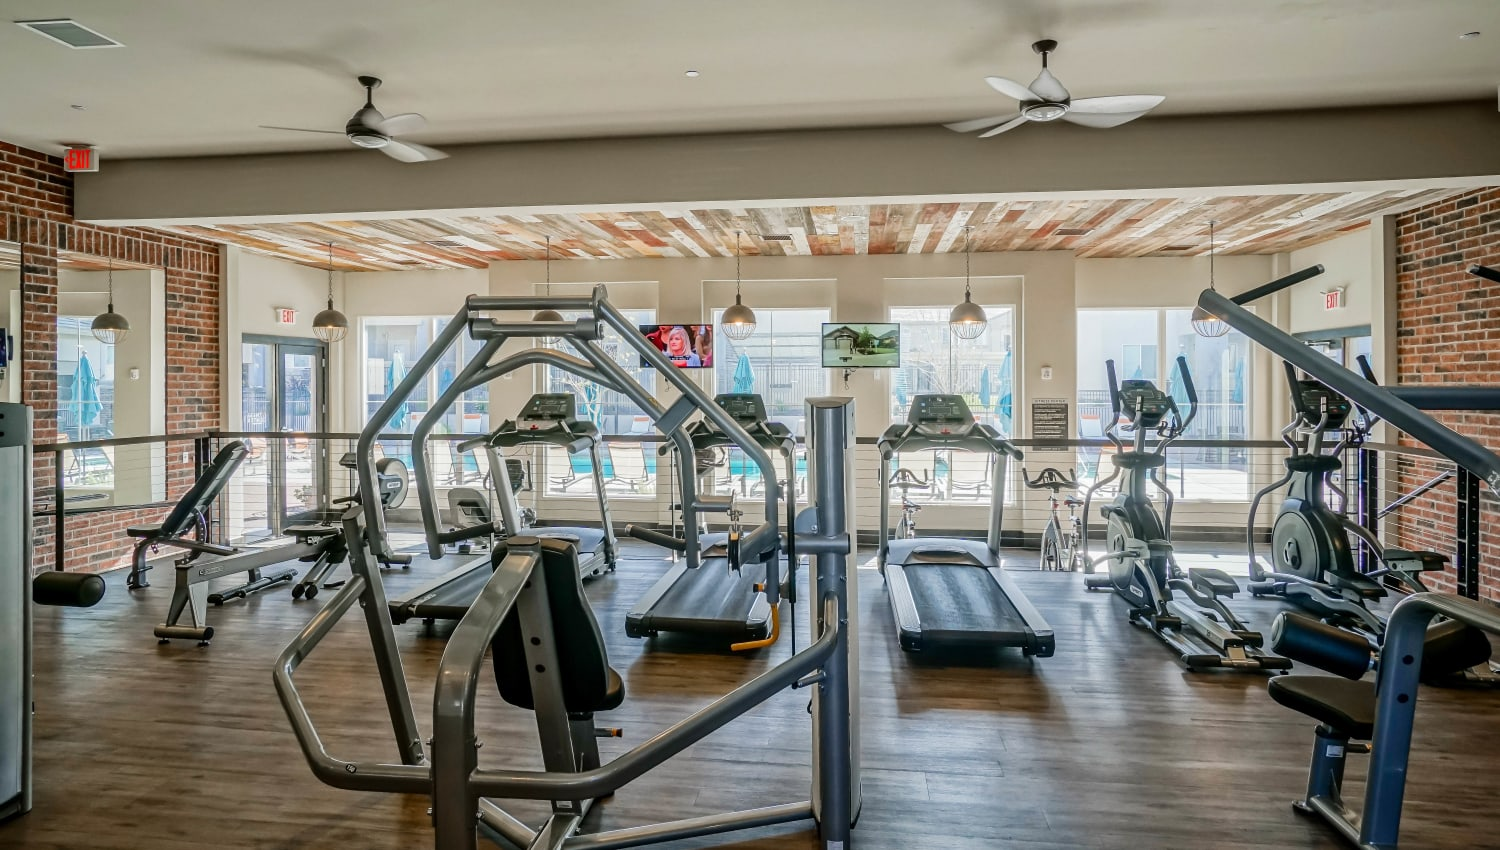 Treadmills, stairclimbers, and more in the fitness center at Olympus Northpoint in Albuquerque, New Mexico